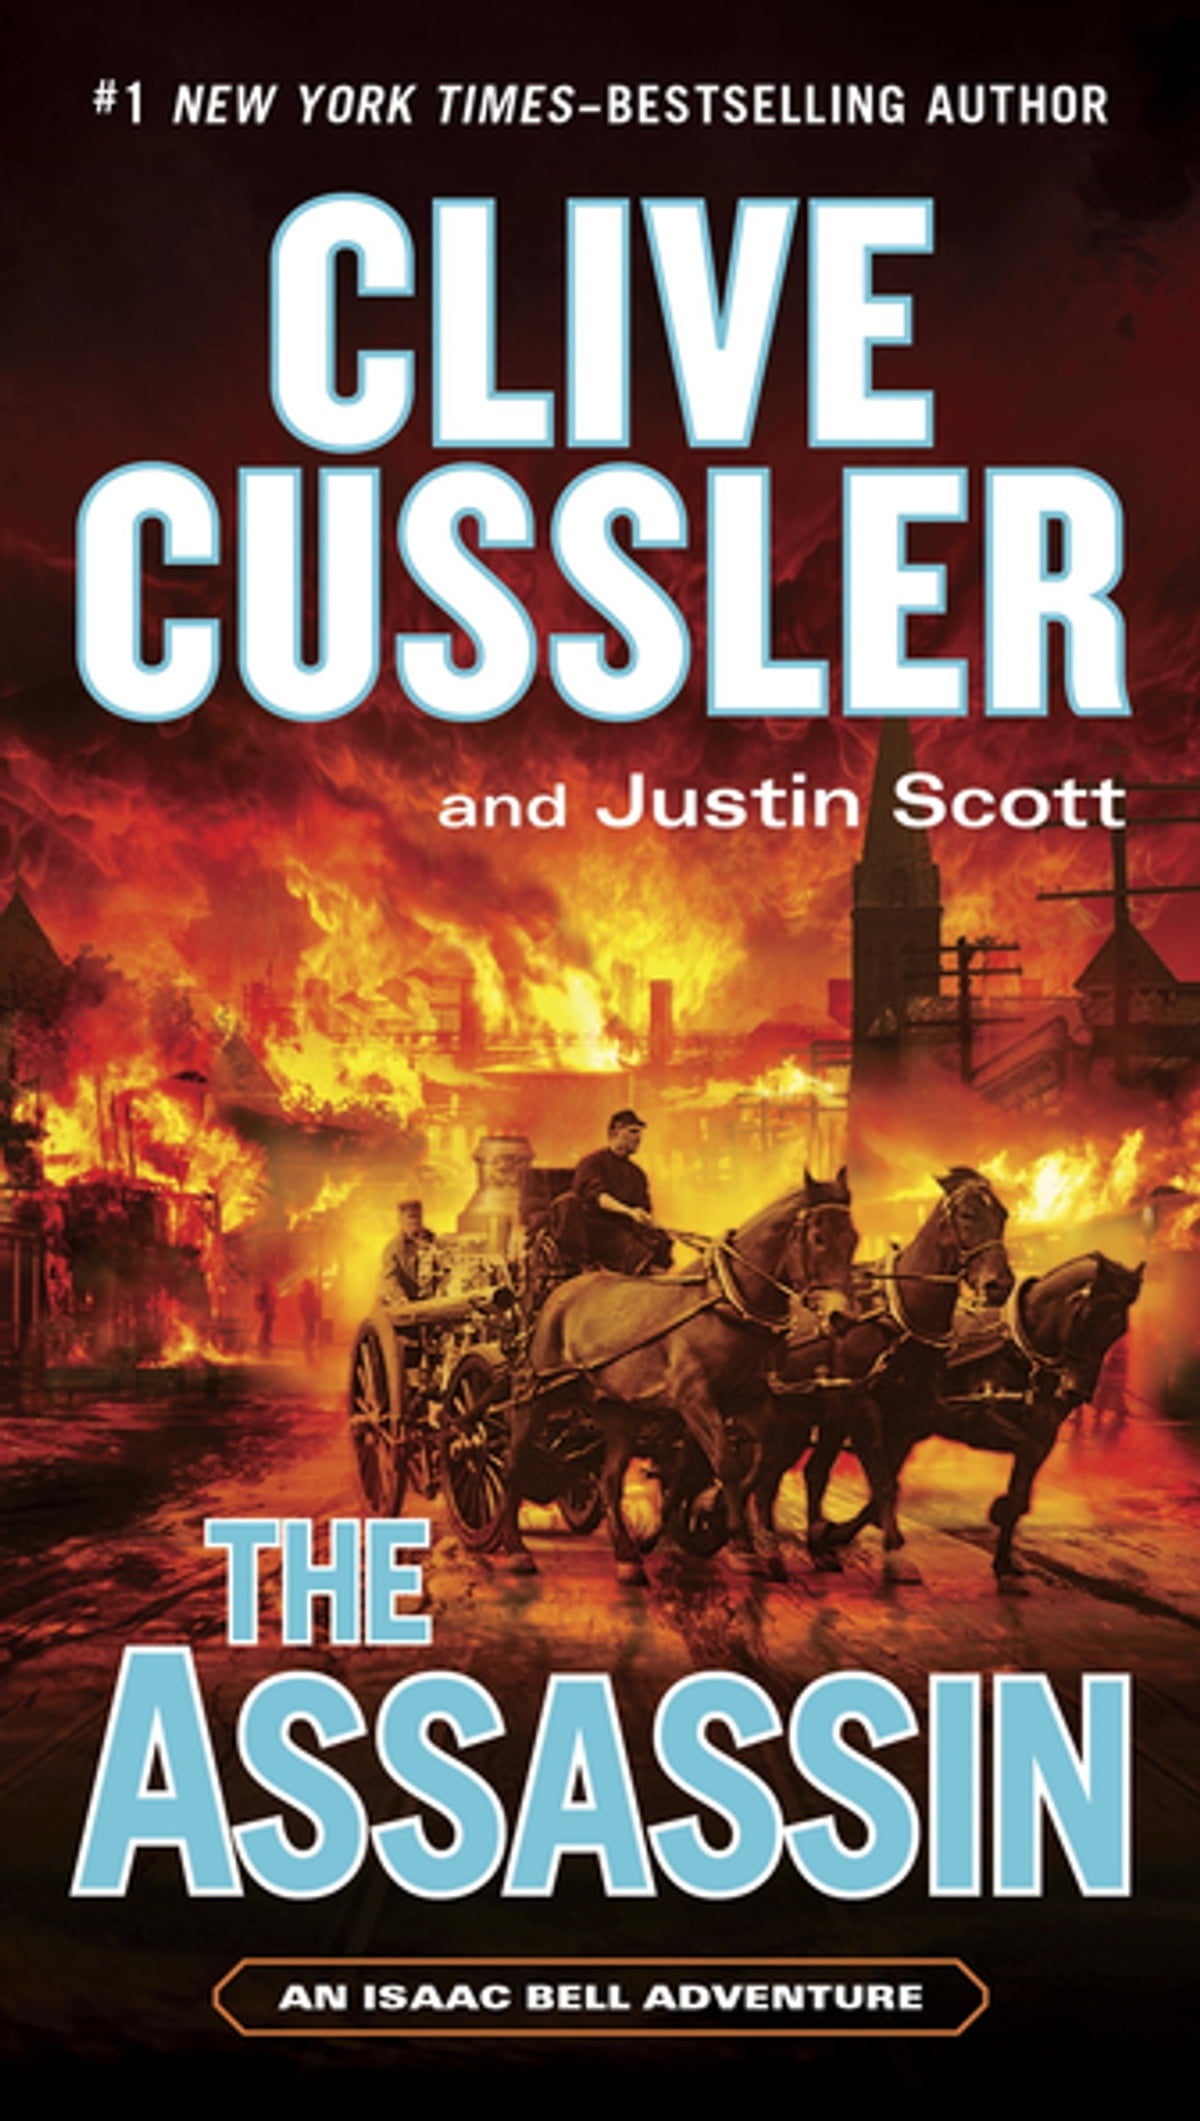 Clive Cussler Libros The Assassin Ebooks By Clive Cussler Rakuten Kobo